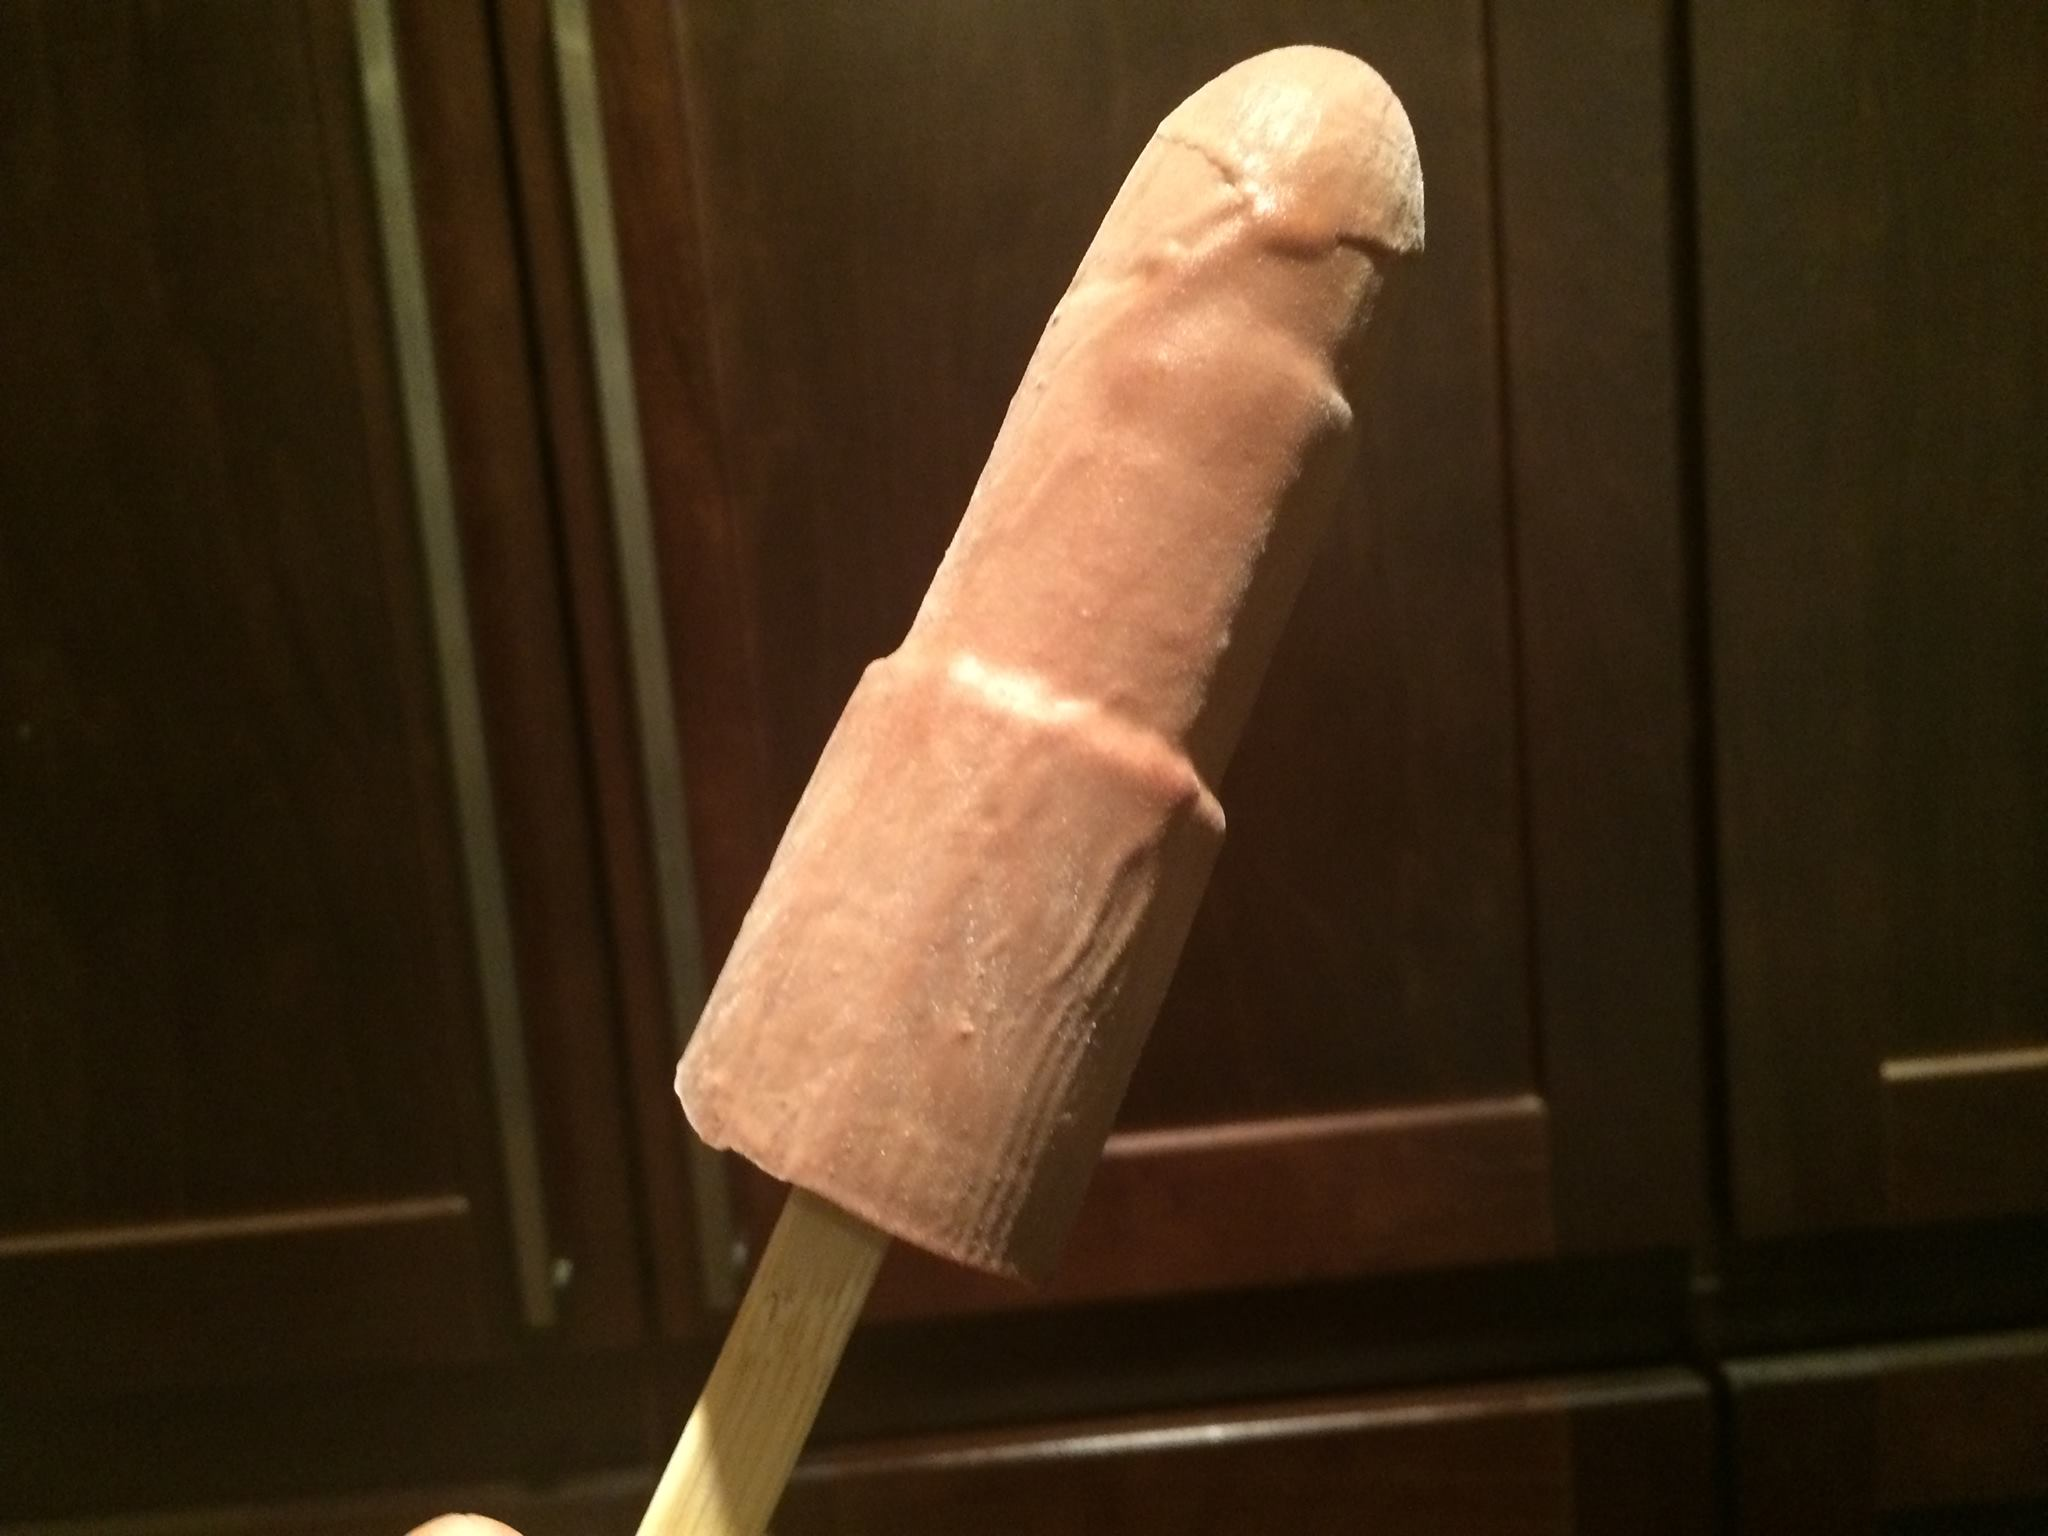 A bit phallic, but so delicious! Fudgesicles!